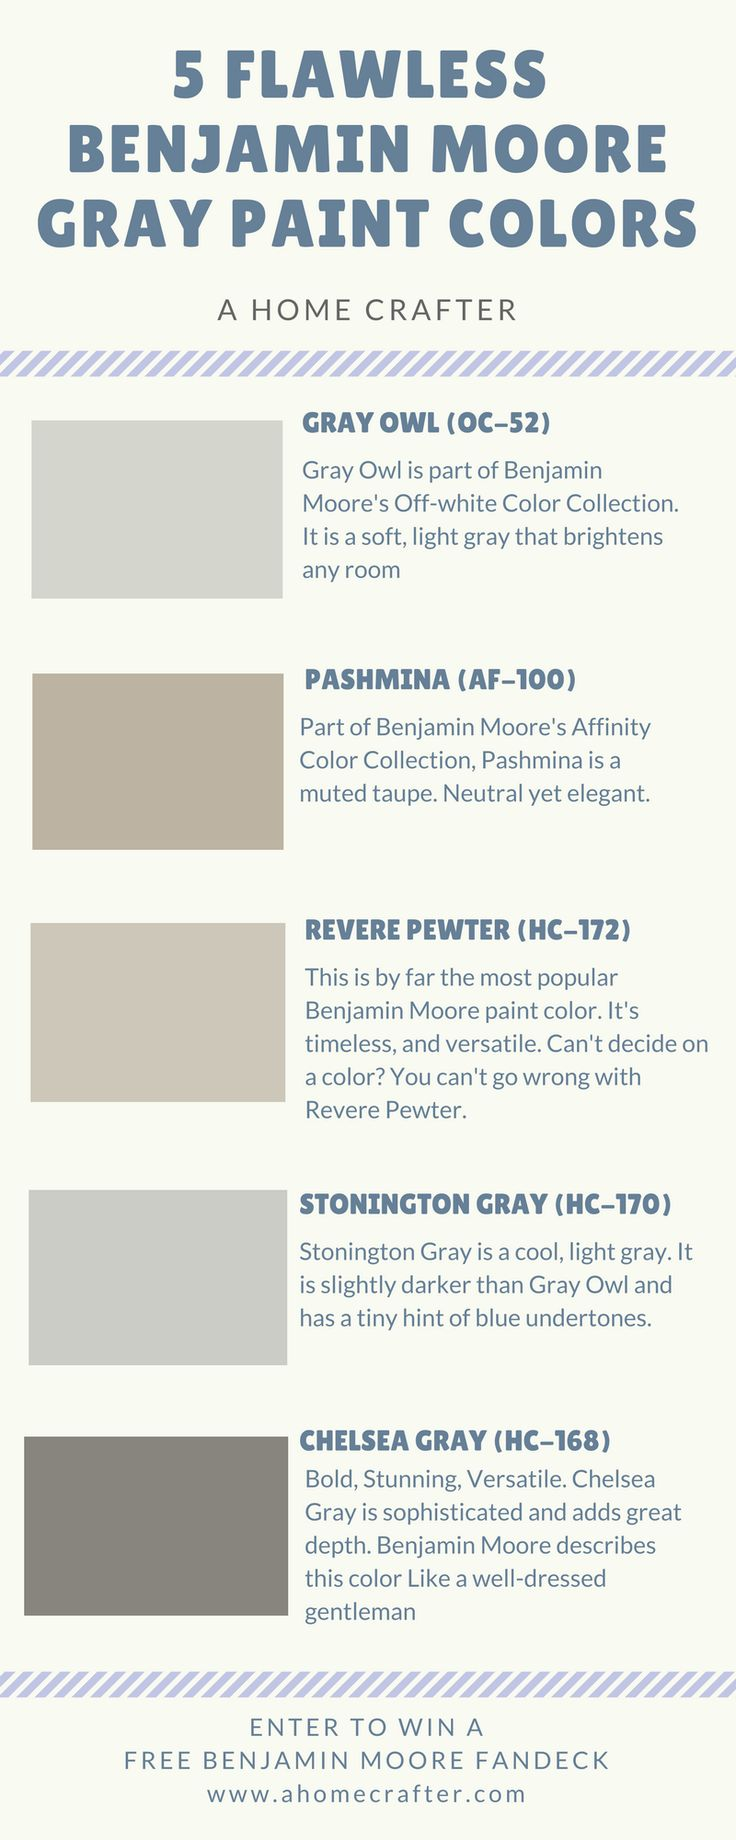 Bedroom Paint Ideas Benjamin Moore best 20+ benjamin moore paint ideas on pinterest | benjamin moore